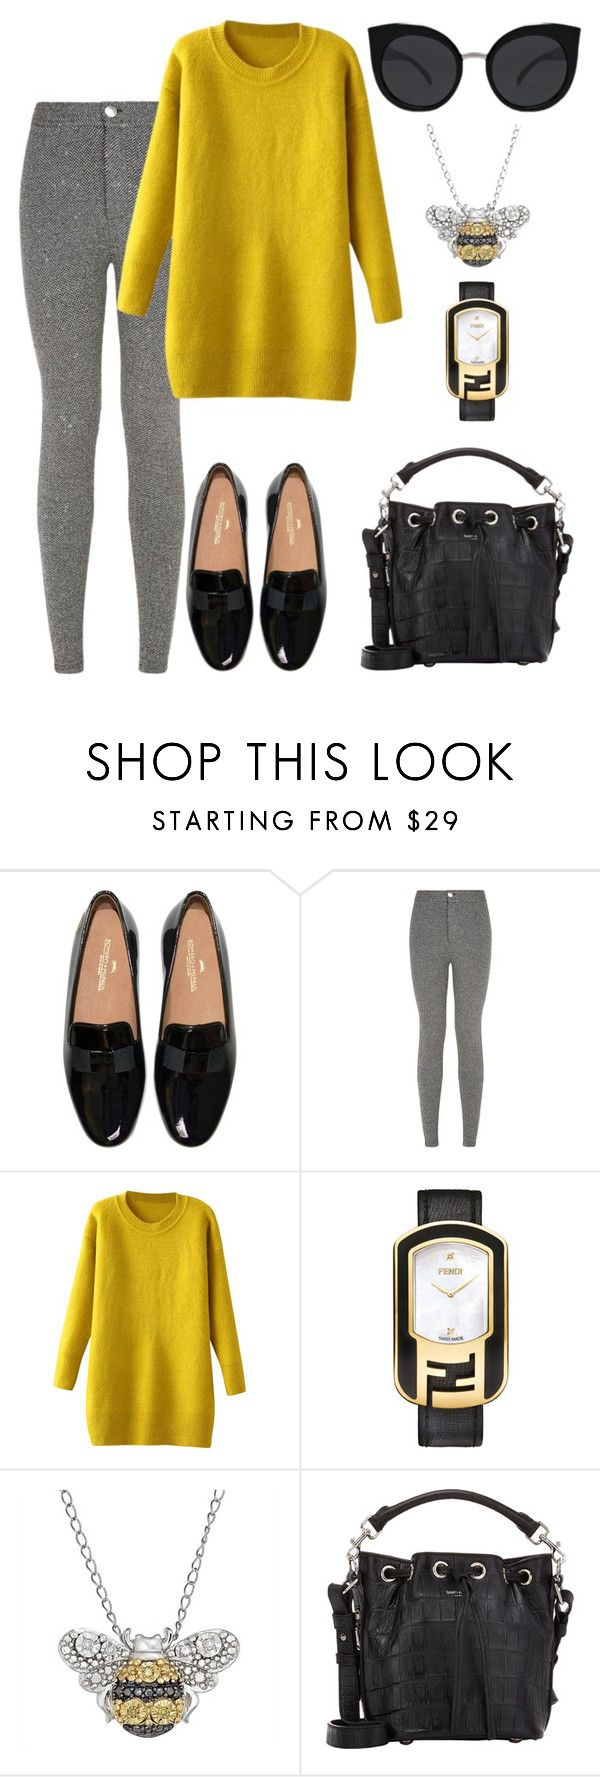 """""""Loafer."""" by schenonek ❤ liked on Polyvore featuring Fendi, Yves Saint Laurent, Quay, women's clothing, women, female, woman, misses and juniors"""